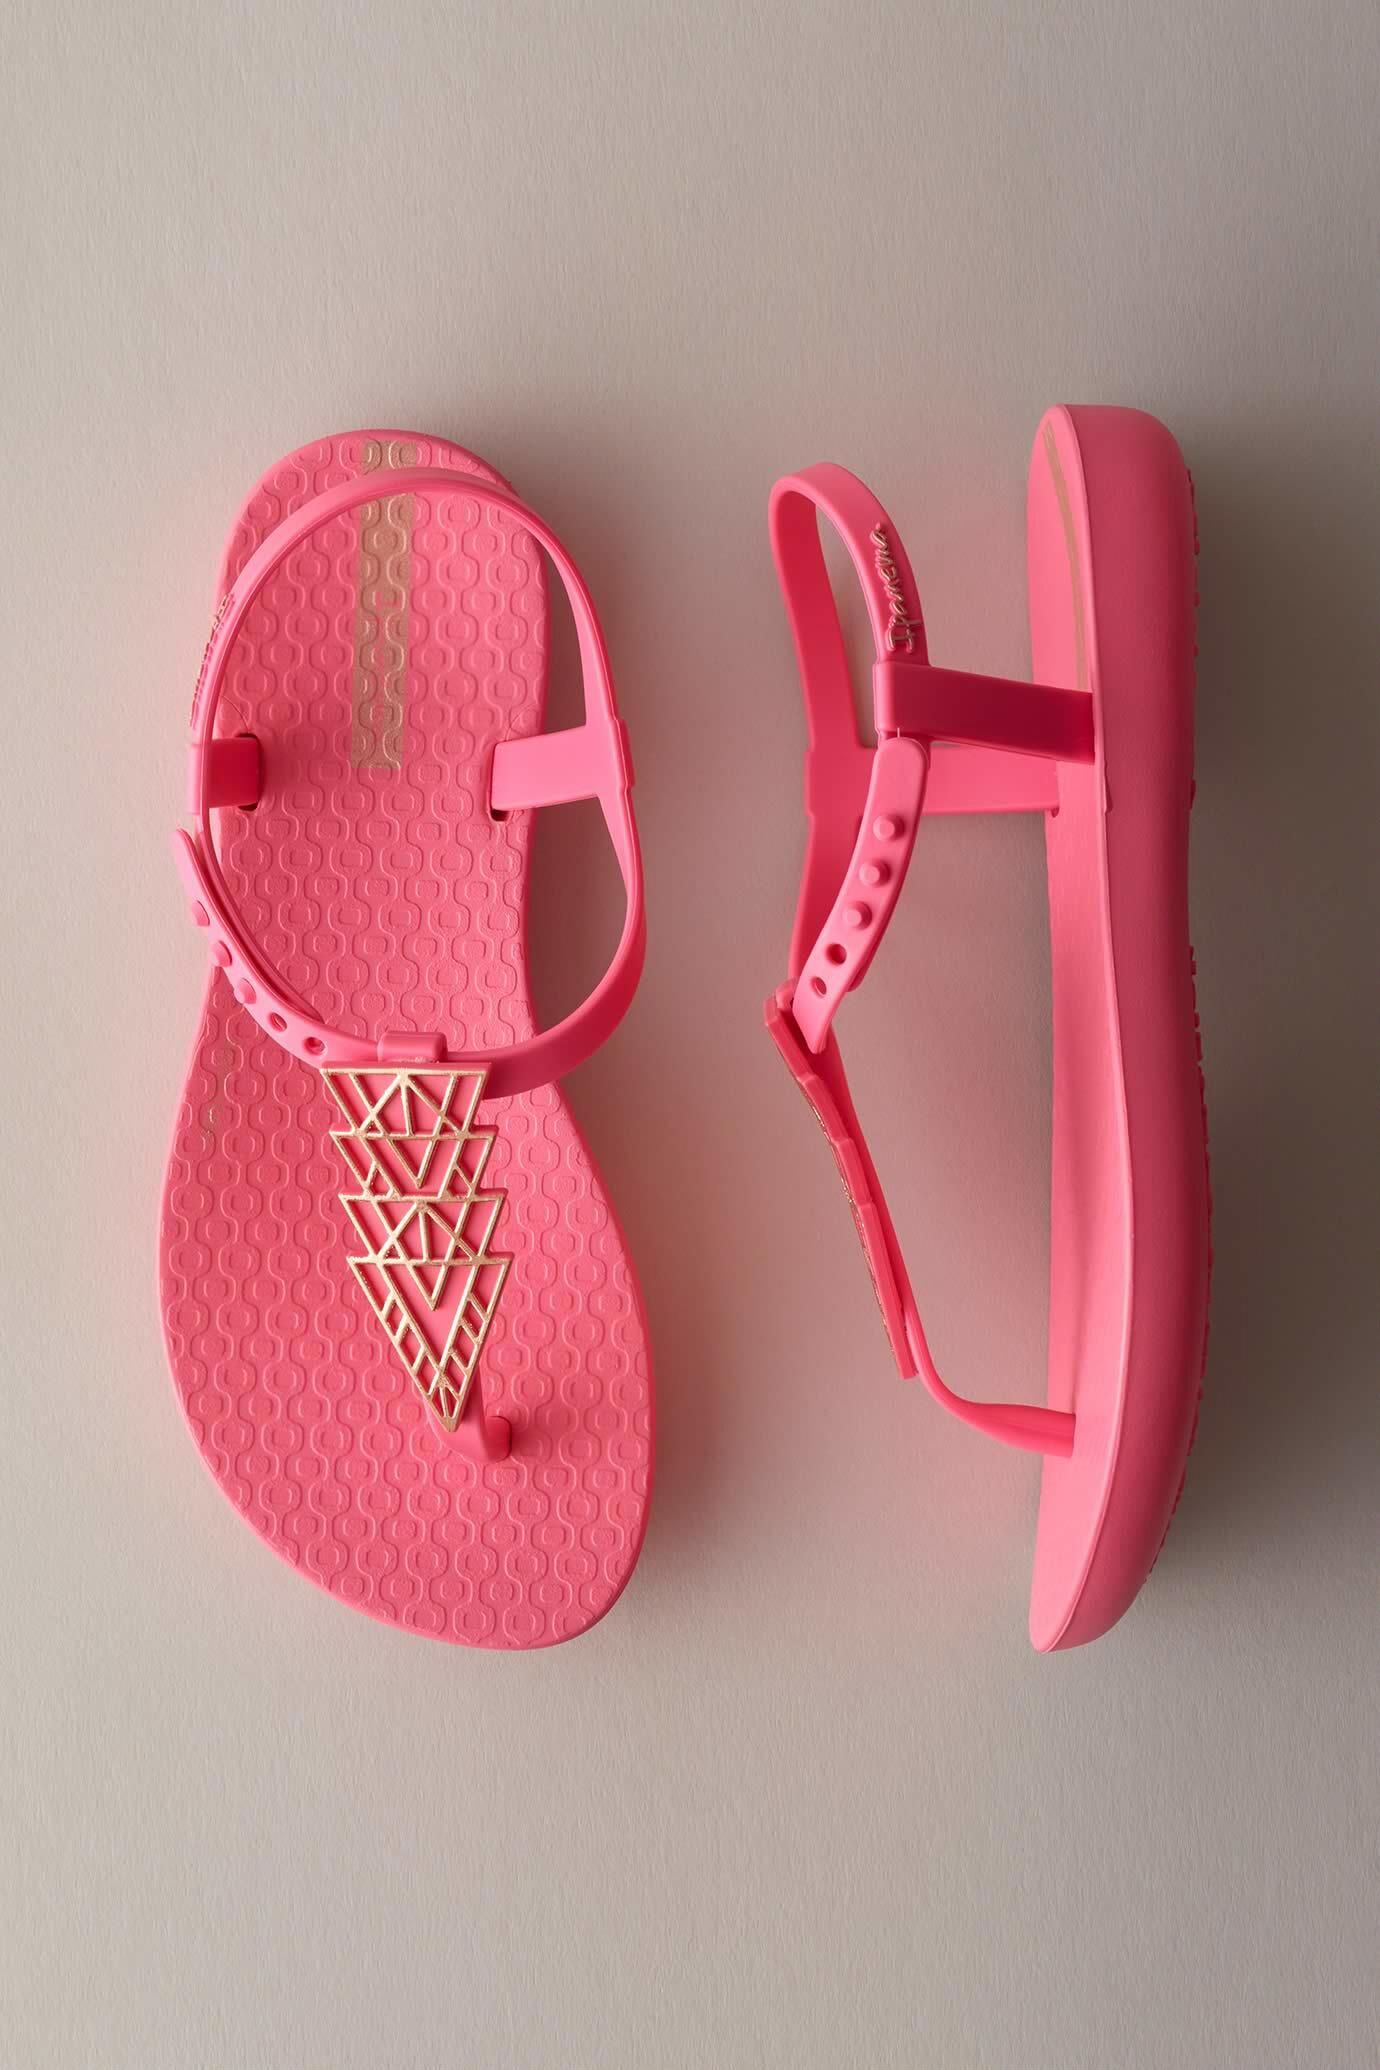 943b38fc741919 Summer feet will love these lightweight pink sandals with a metallic  art-deco design. Comfortable